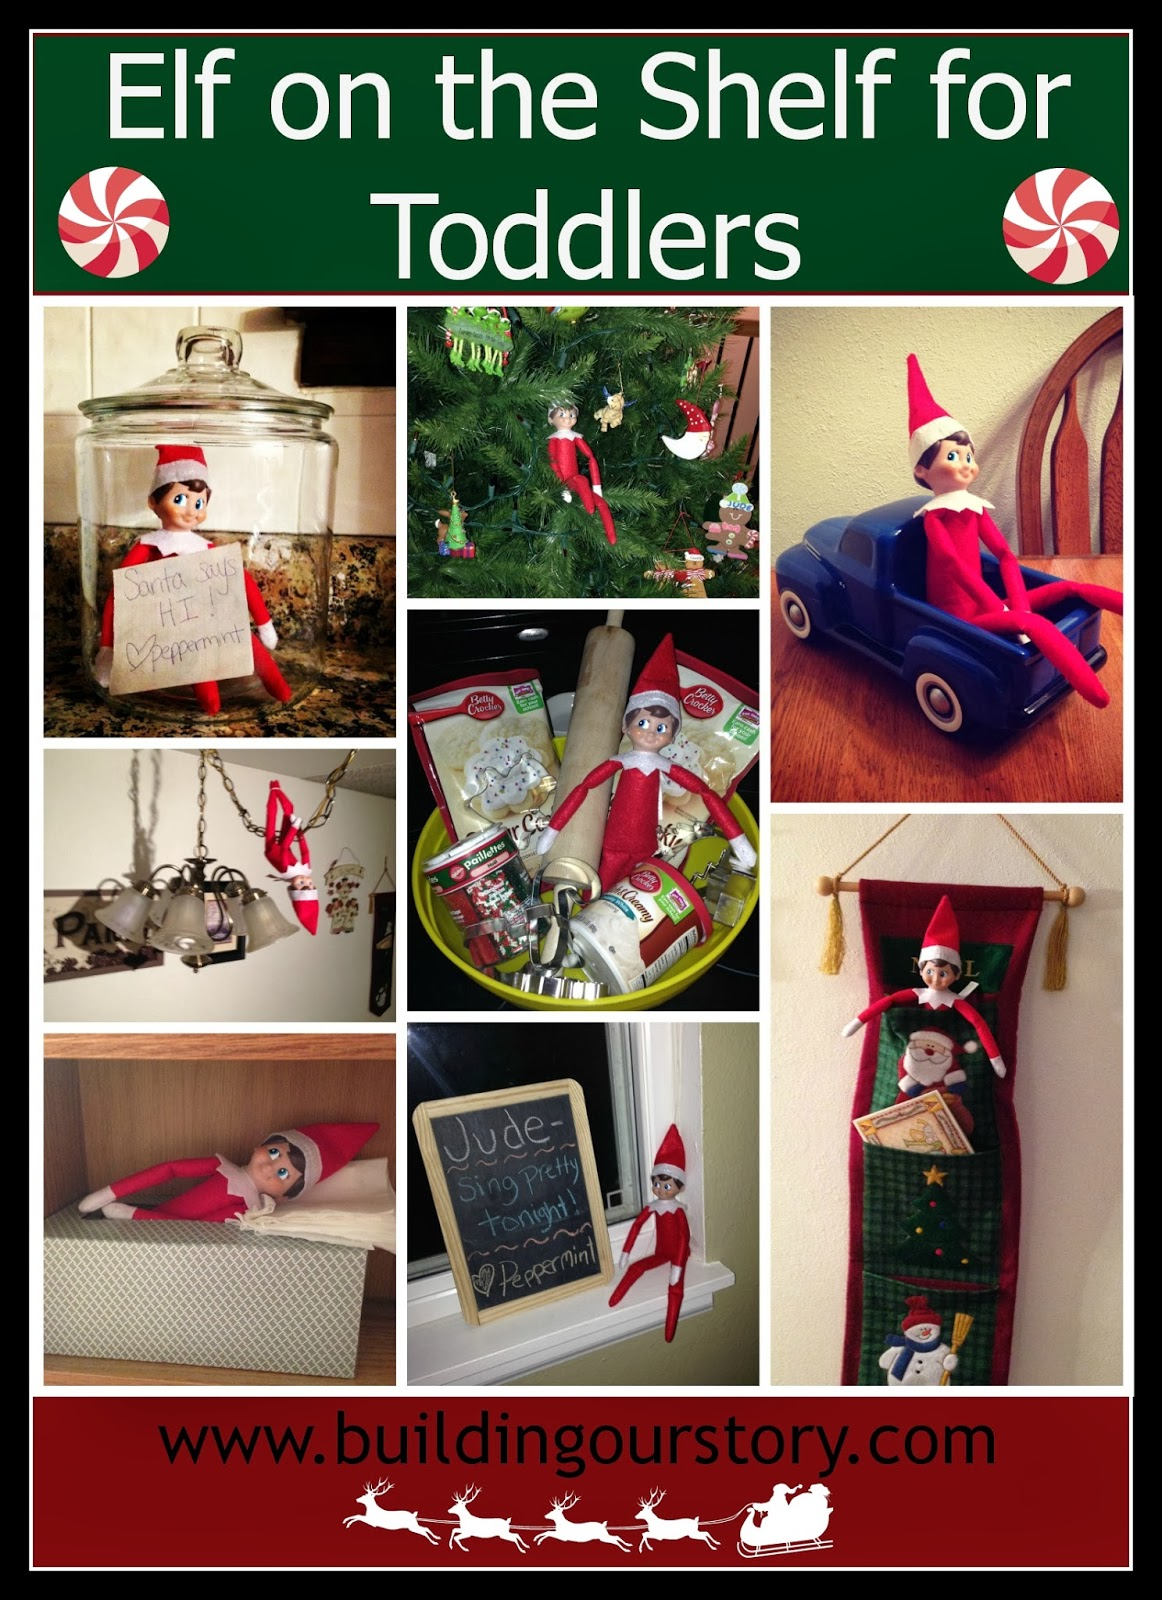 Our Elf On The Shelf Week 2 Building Our Story